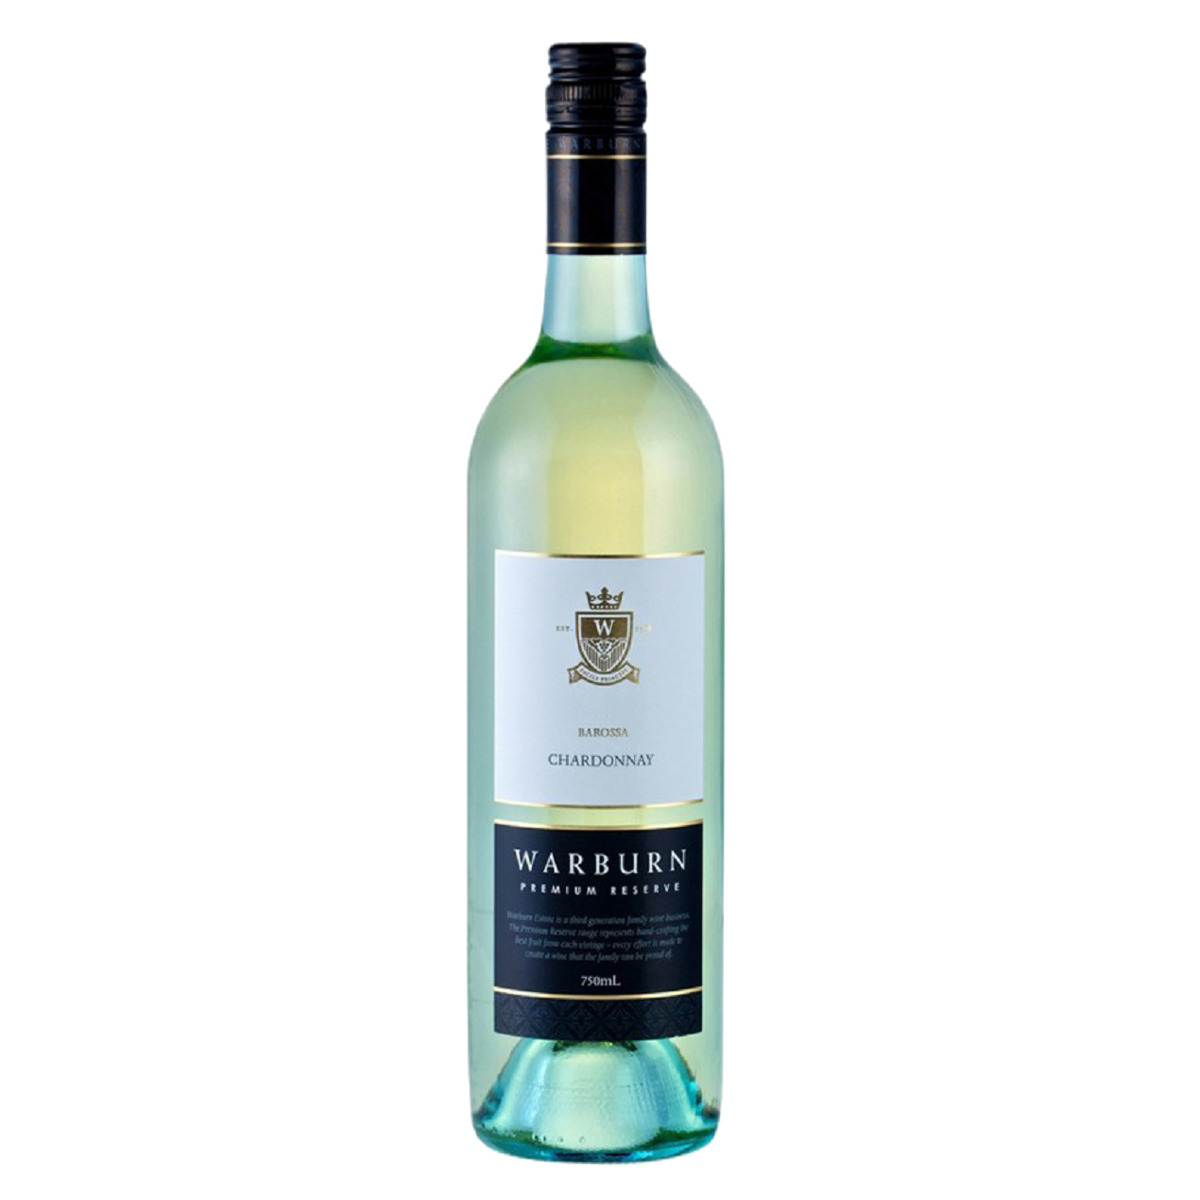 Warburn Estate Premium Chardonnay